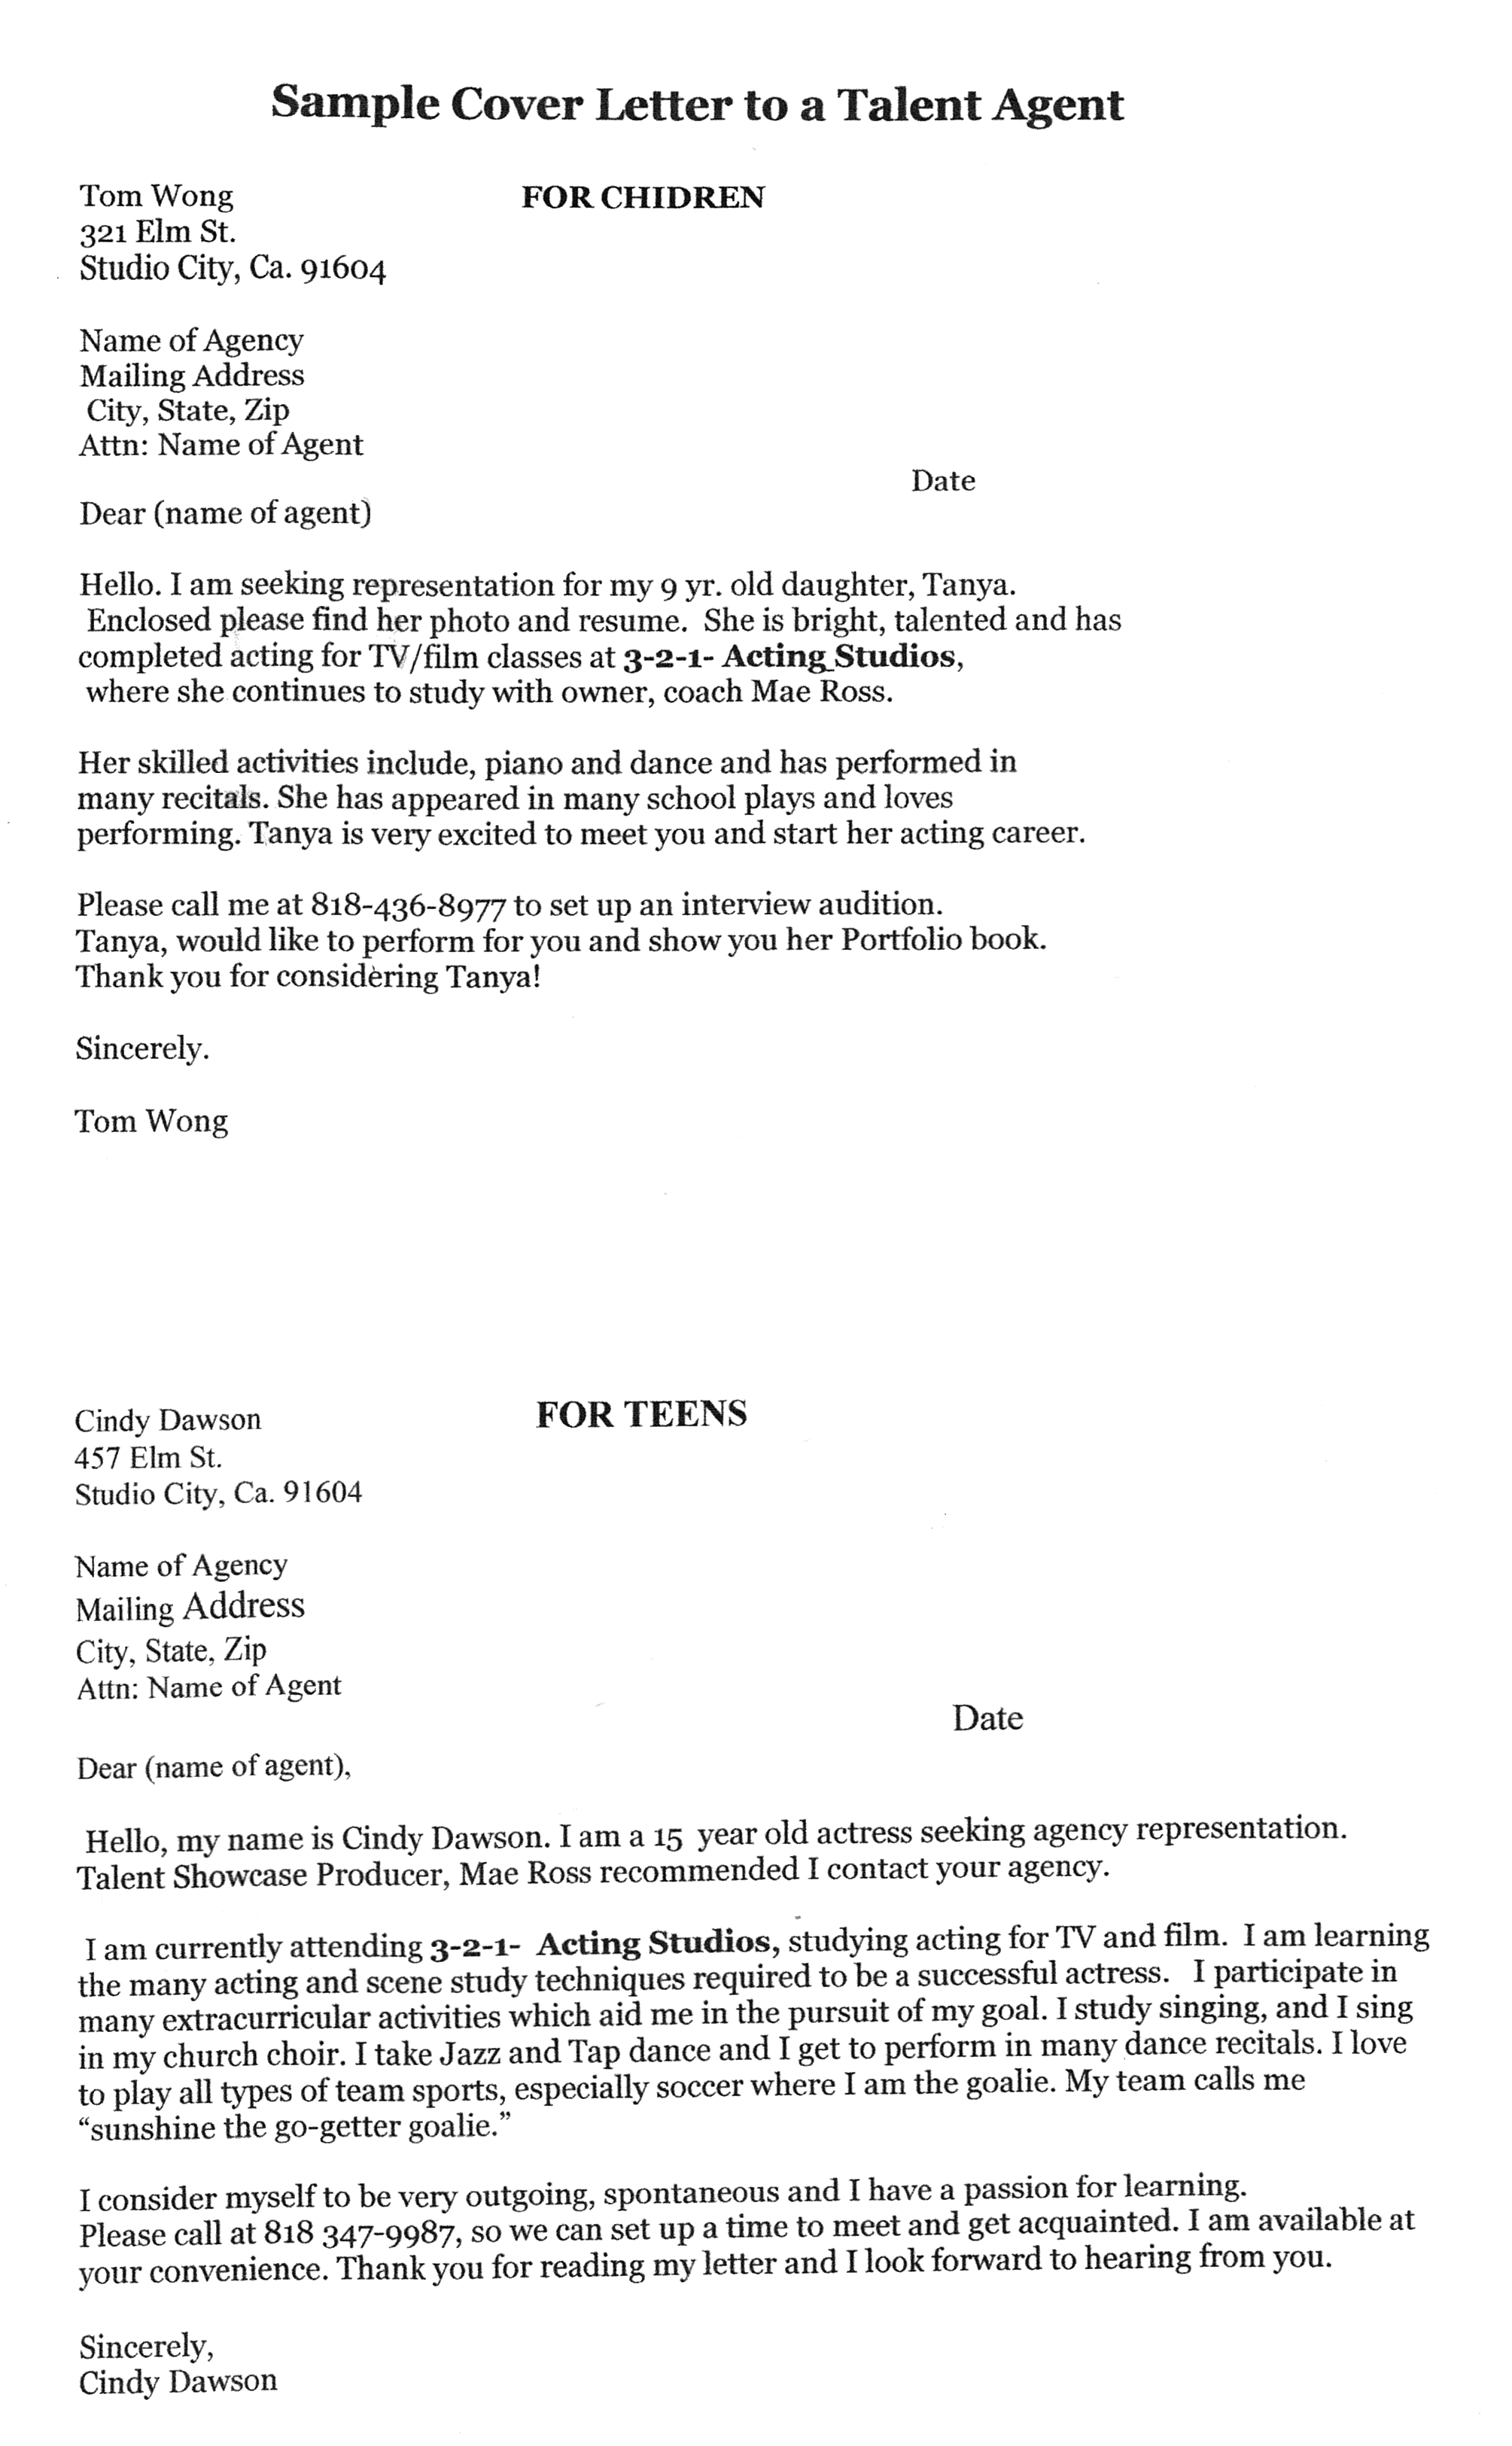 Elegant Good Sample Cover Letters To Talent Agents